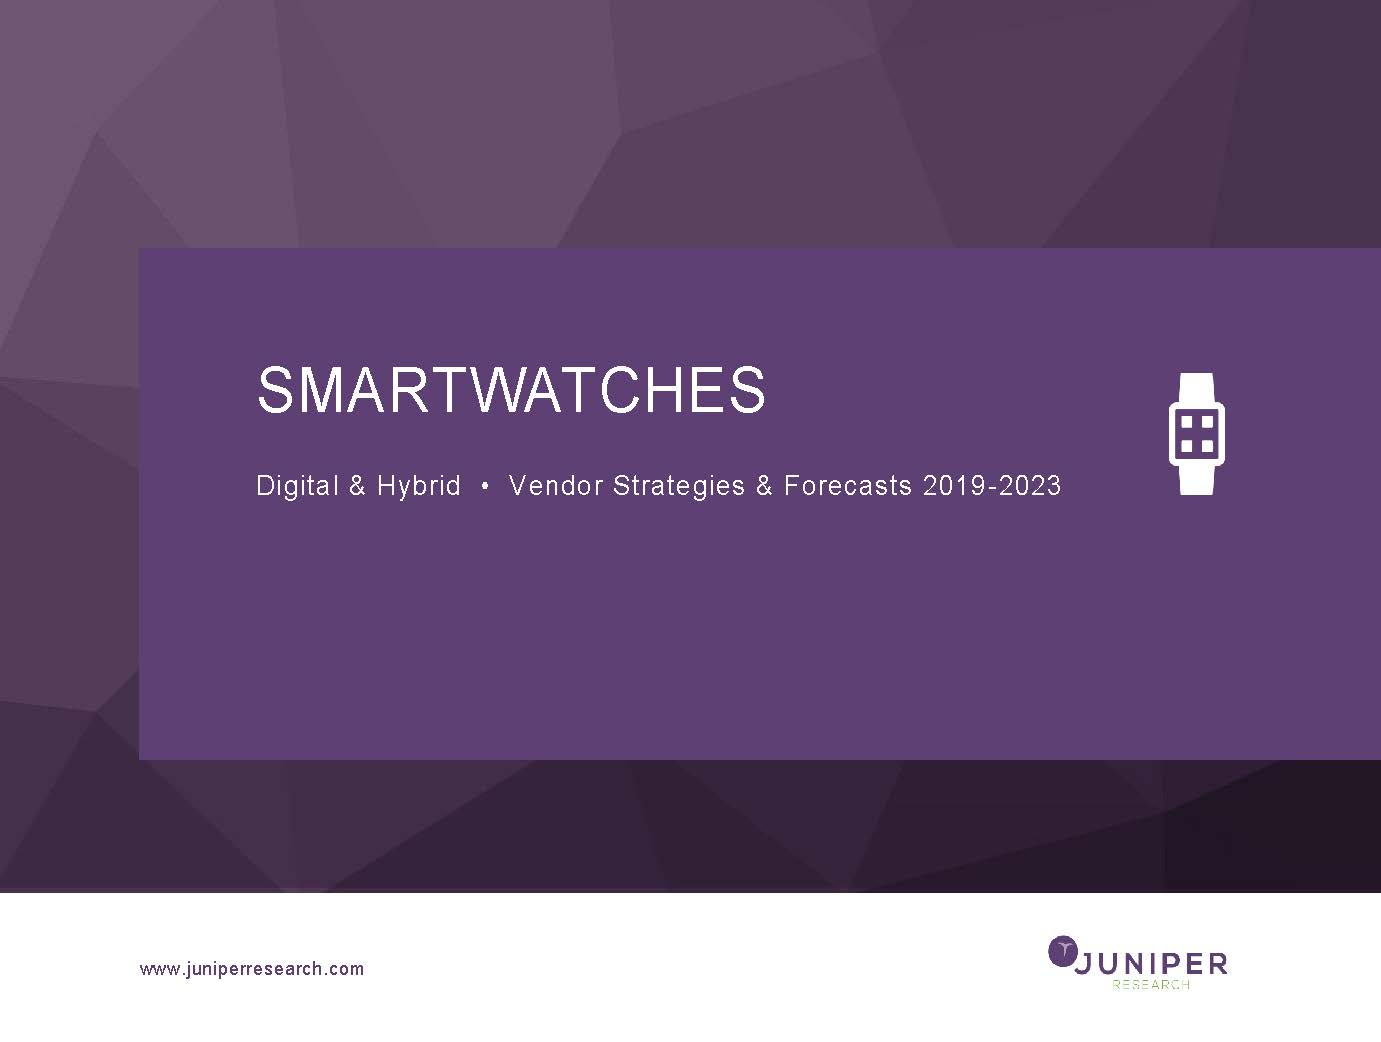 Smartwatches: Digital & Hybrid Vendor Strategies & Forecasts 2019-2023